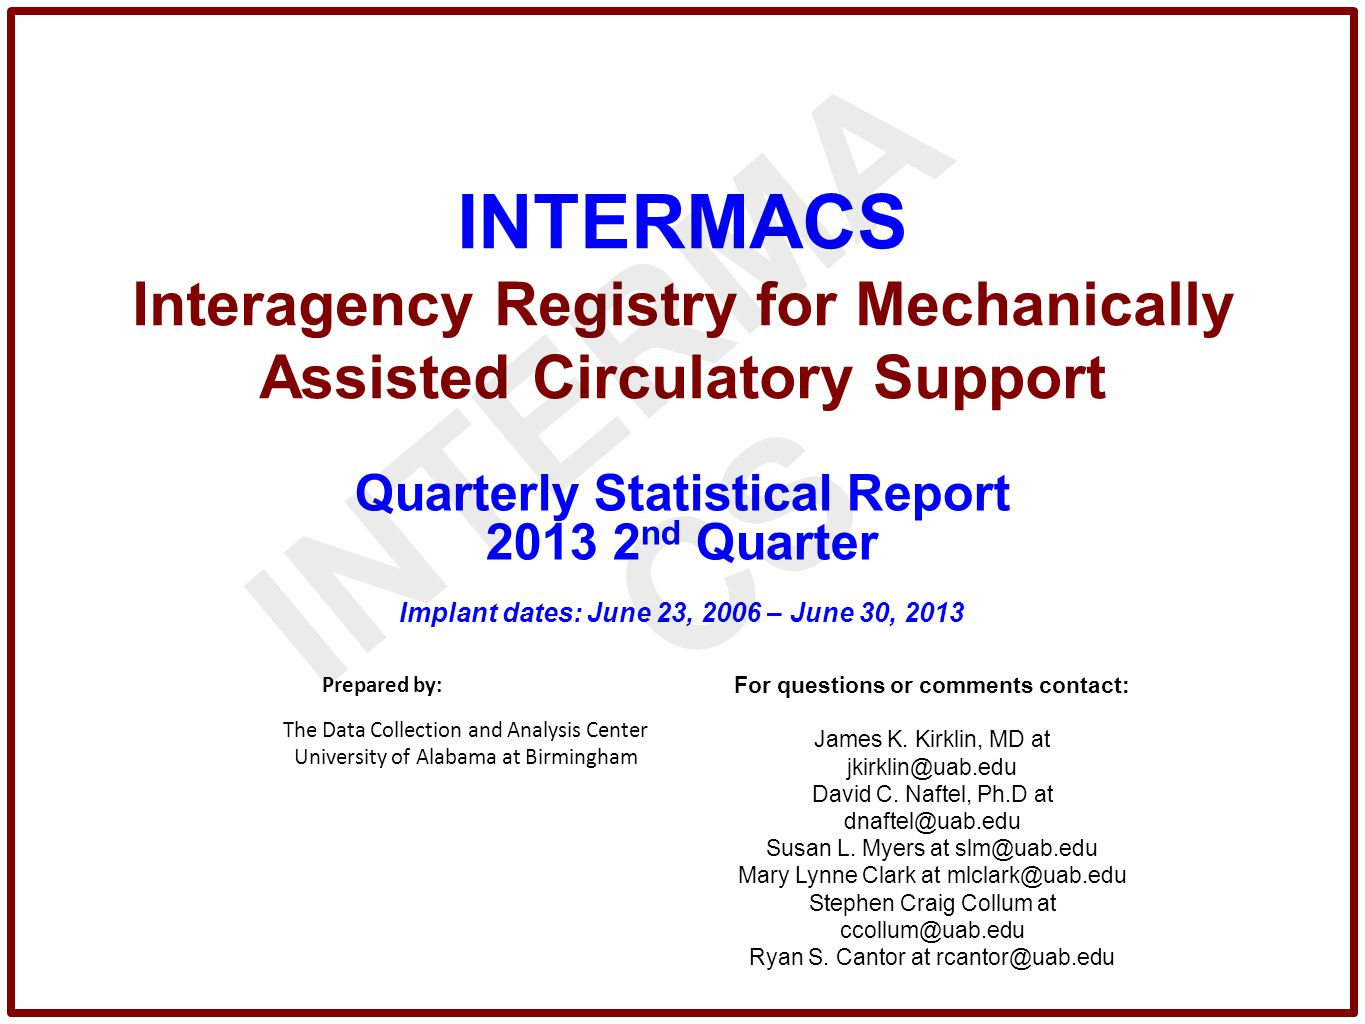 INTERMACS Interagency Registry for Mechanically Assisted Circulatory Support